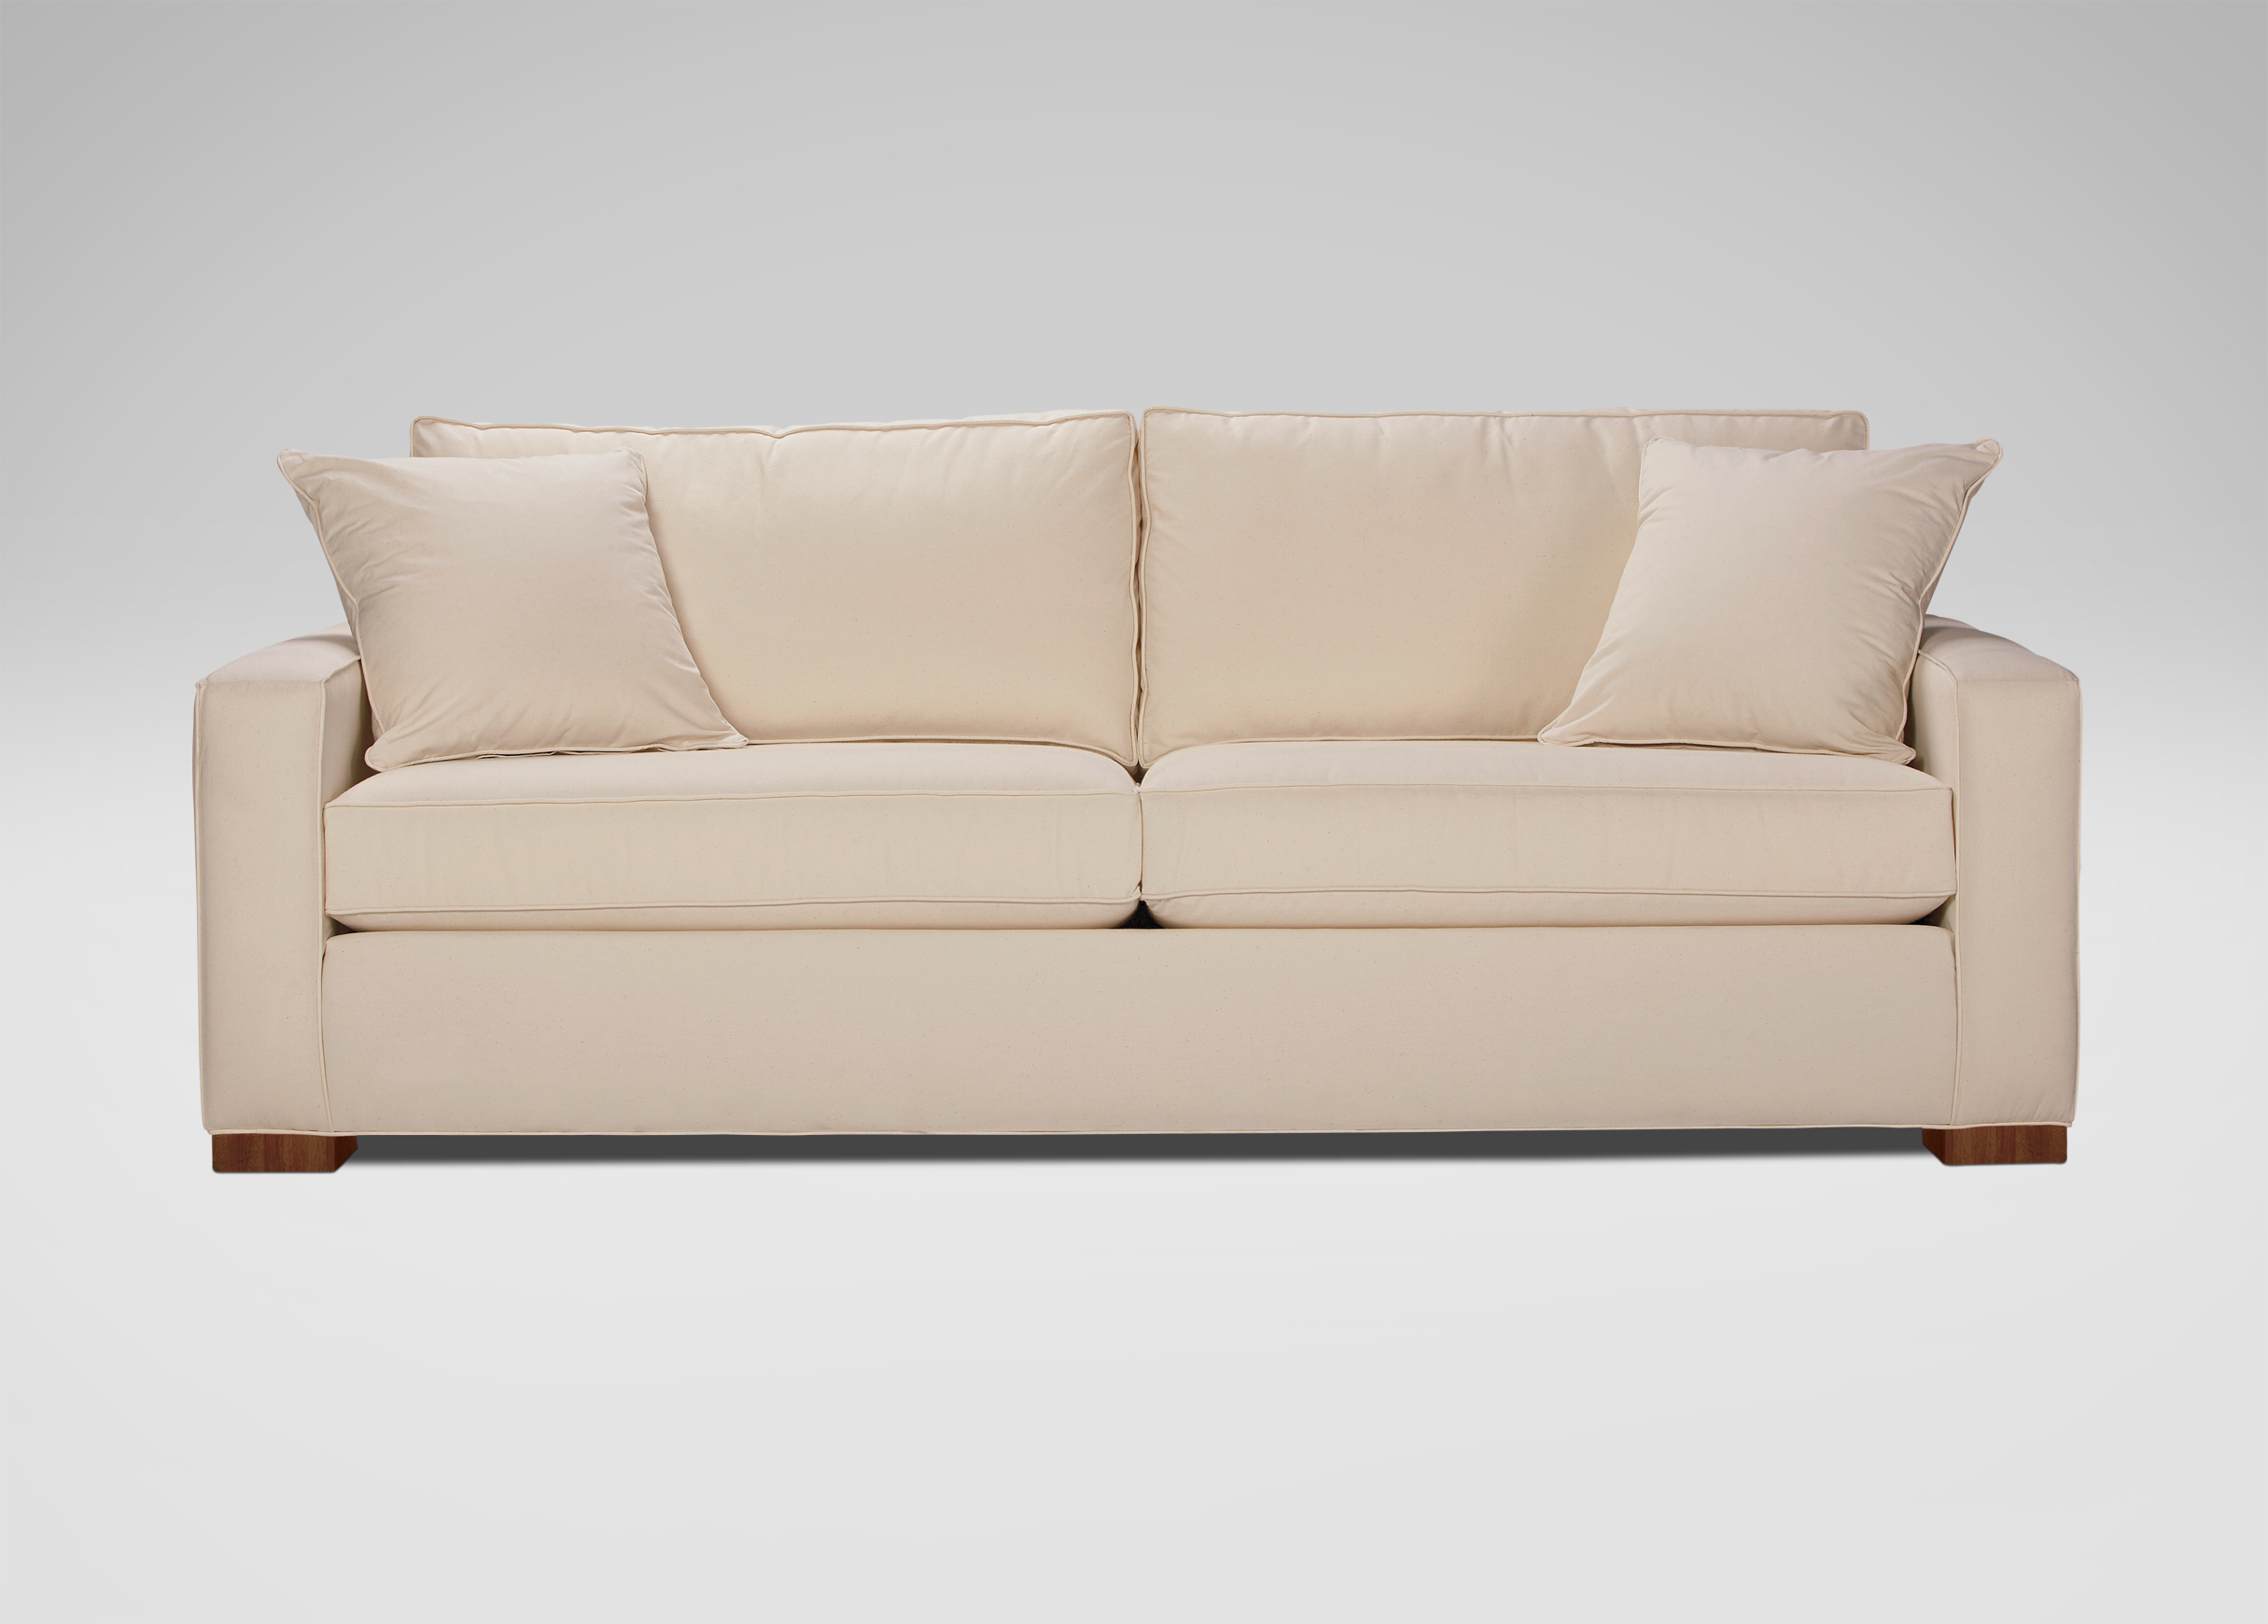 hudson 100 inch sofa costa rican furniture rh pacifichomefurnishing com 100 inch leather sofa 100 inch couch